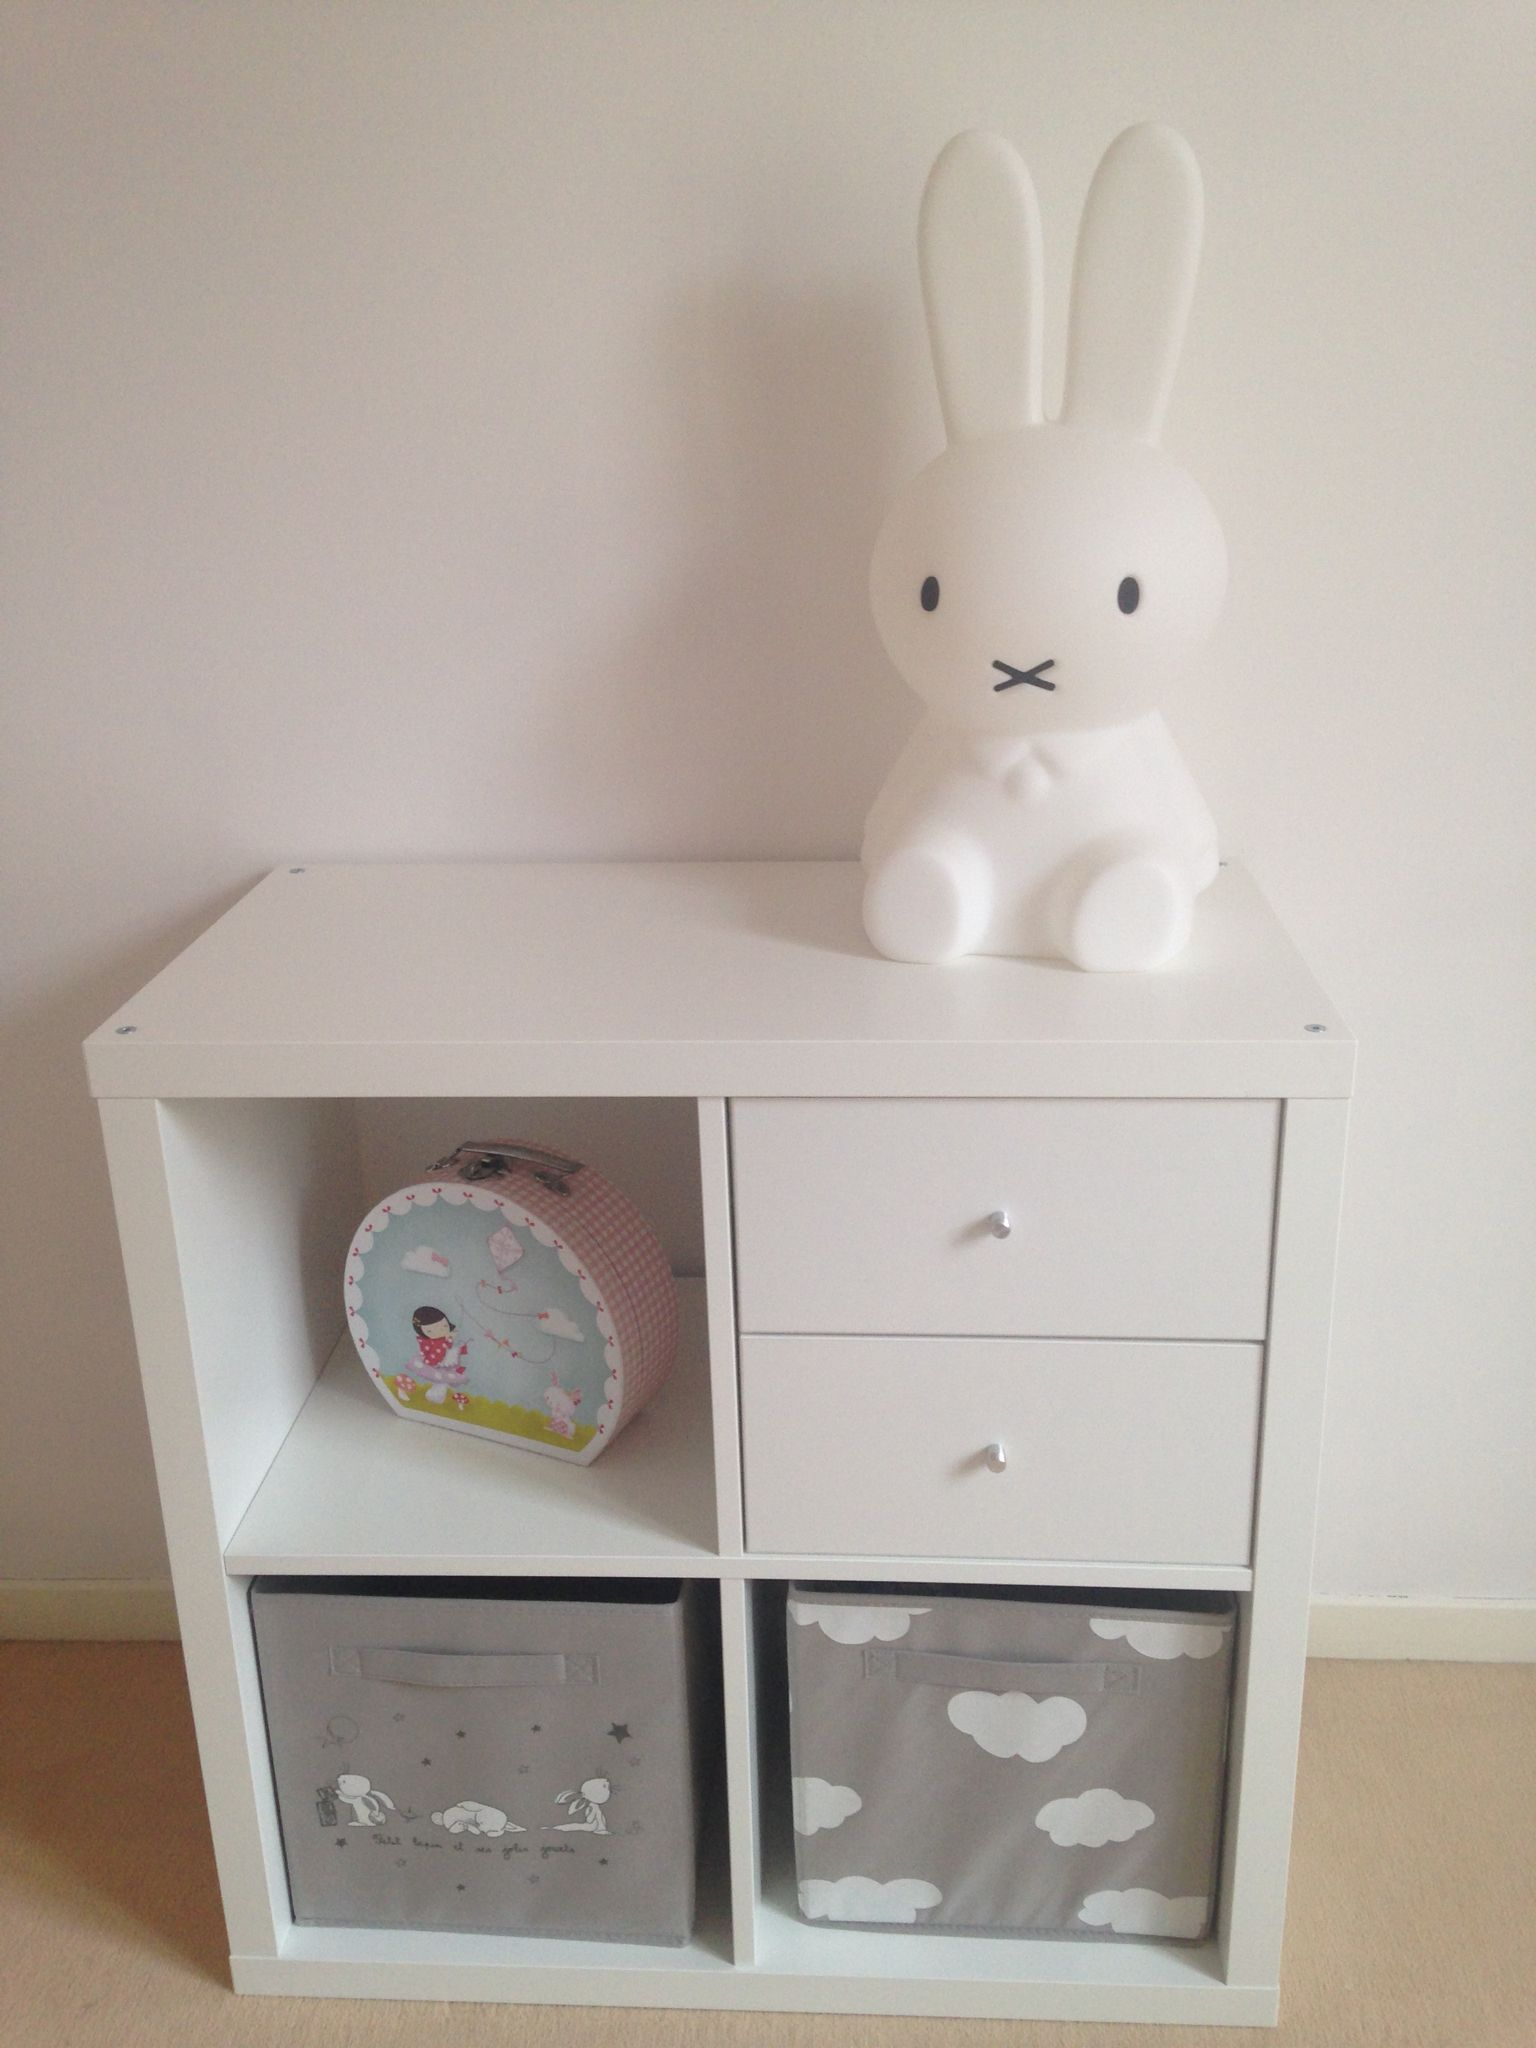 lampe miffy meuble ikea kallax bo tes de rangements kiabi. Black Bedroom Furniture Sets. Home Design Ideas